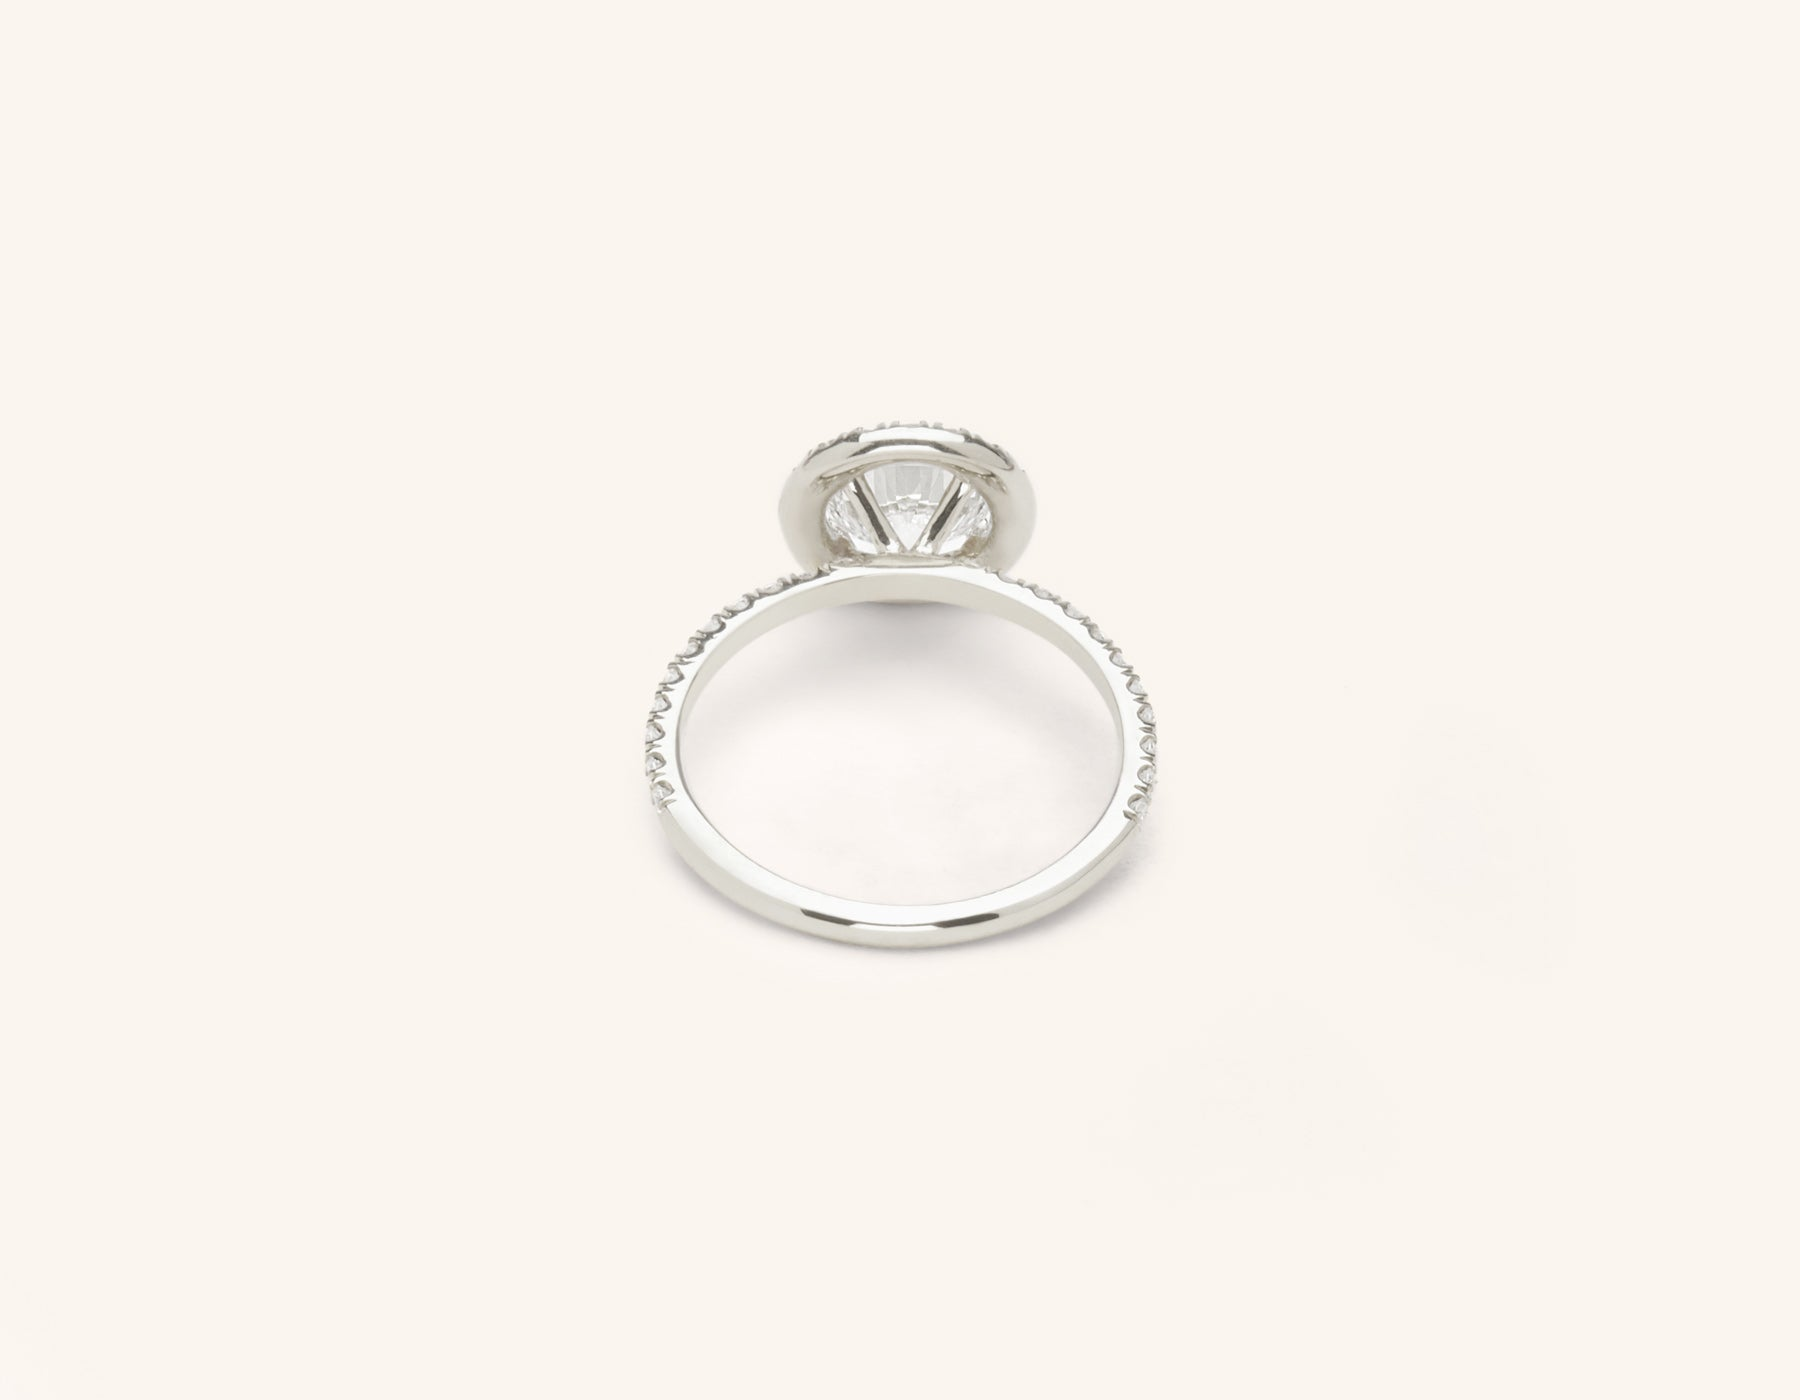 Vrai & Oro platinum Diamond engagement ring The Halo pave simple classic band